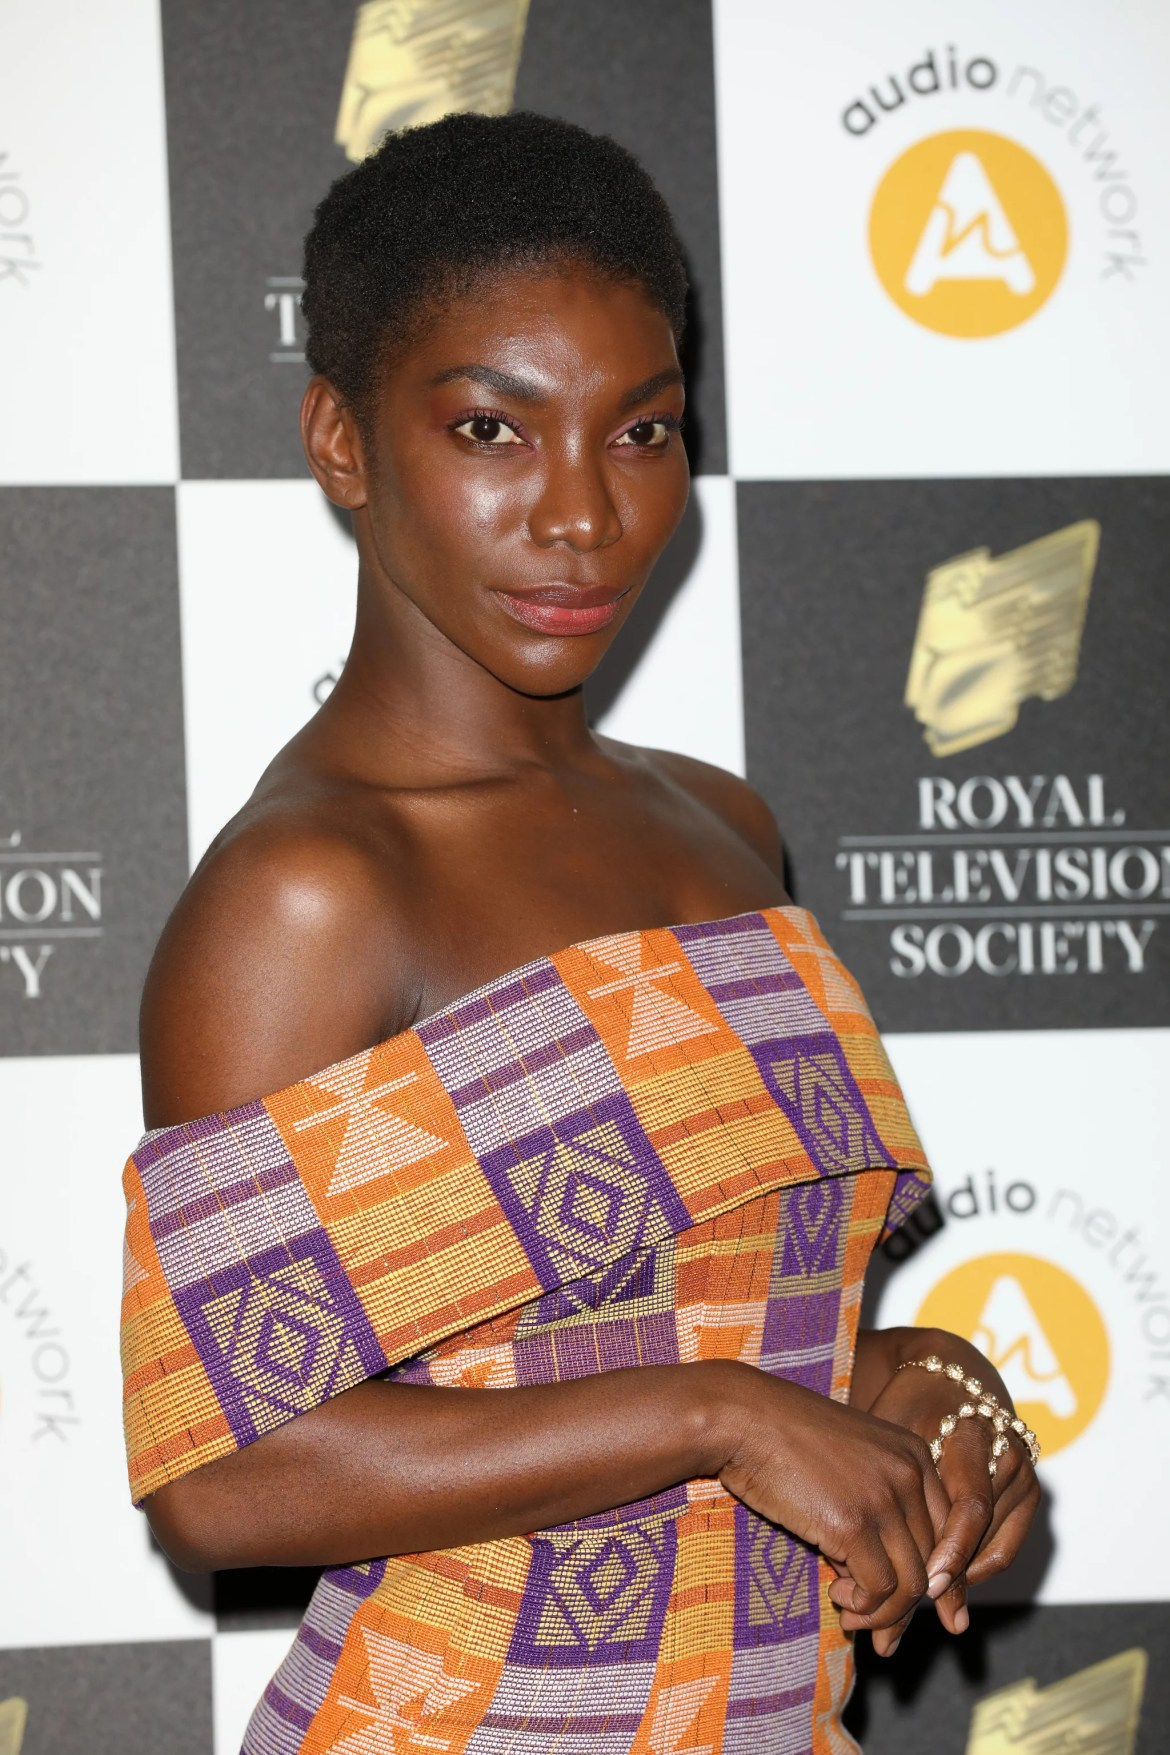 LONDON, ENGLAND - MARCH 19:  Michaela Coel attends the Royal Television Society Programme Awards at Grosvenor House on March 19, 2019 in London, England. (Photo by Tristan Fewings/Getty Images)